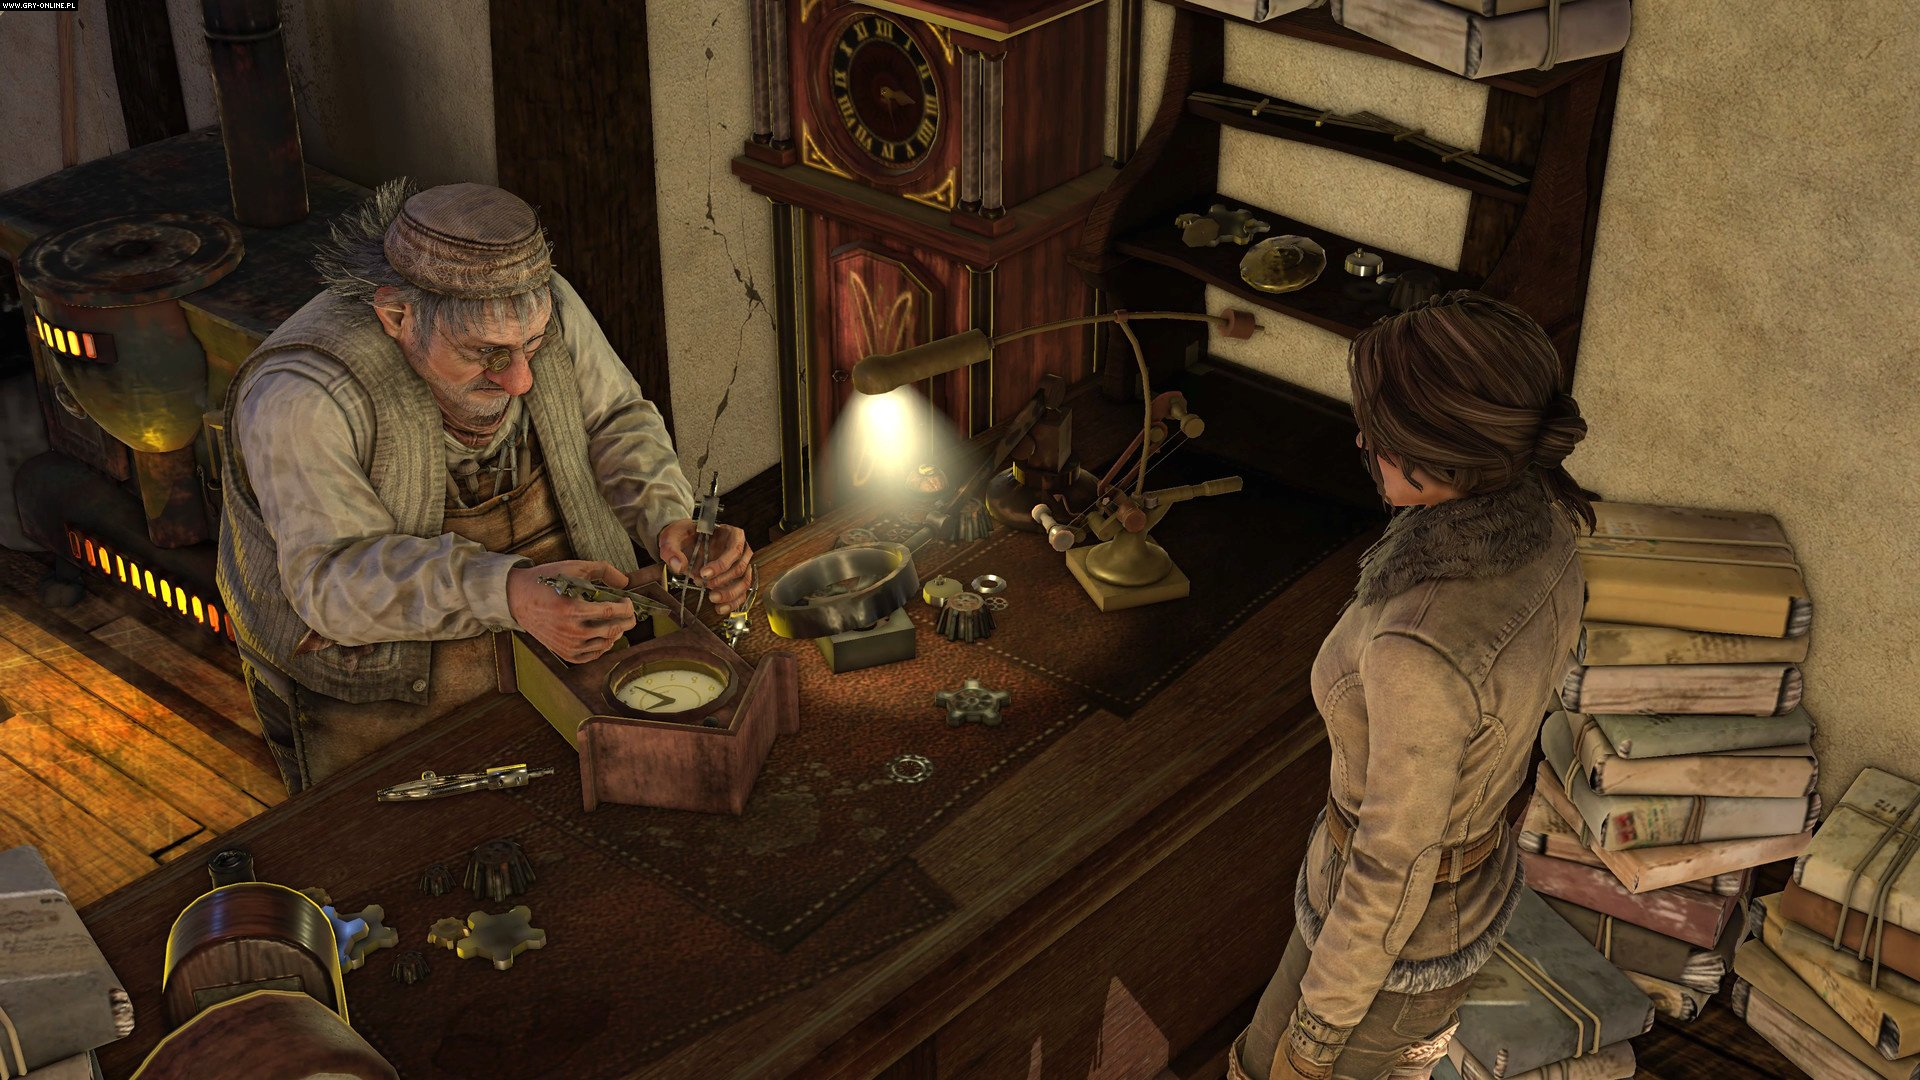 Syberia 3 PC, PS4, XONE Games Image 1/30, Microids/Anuman Interactive